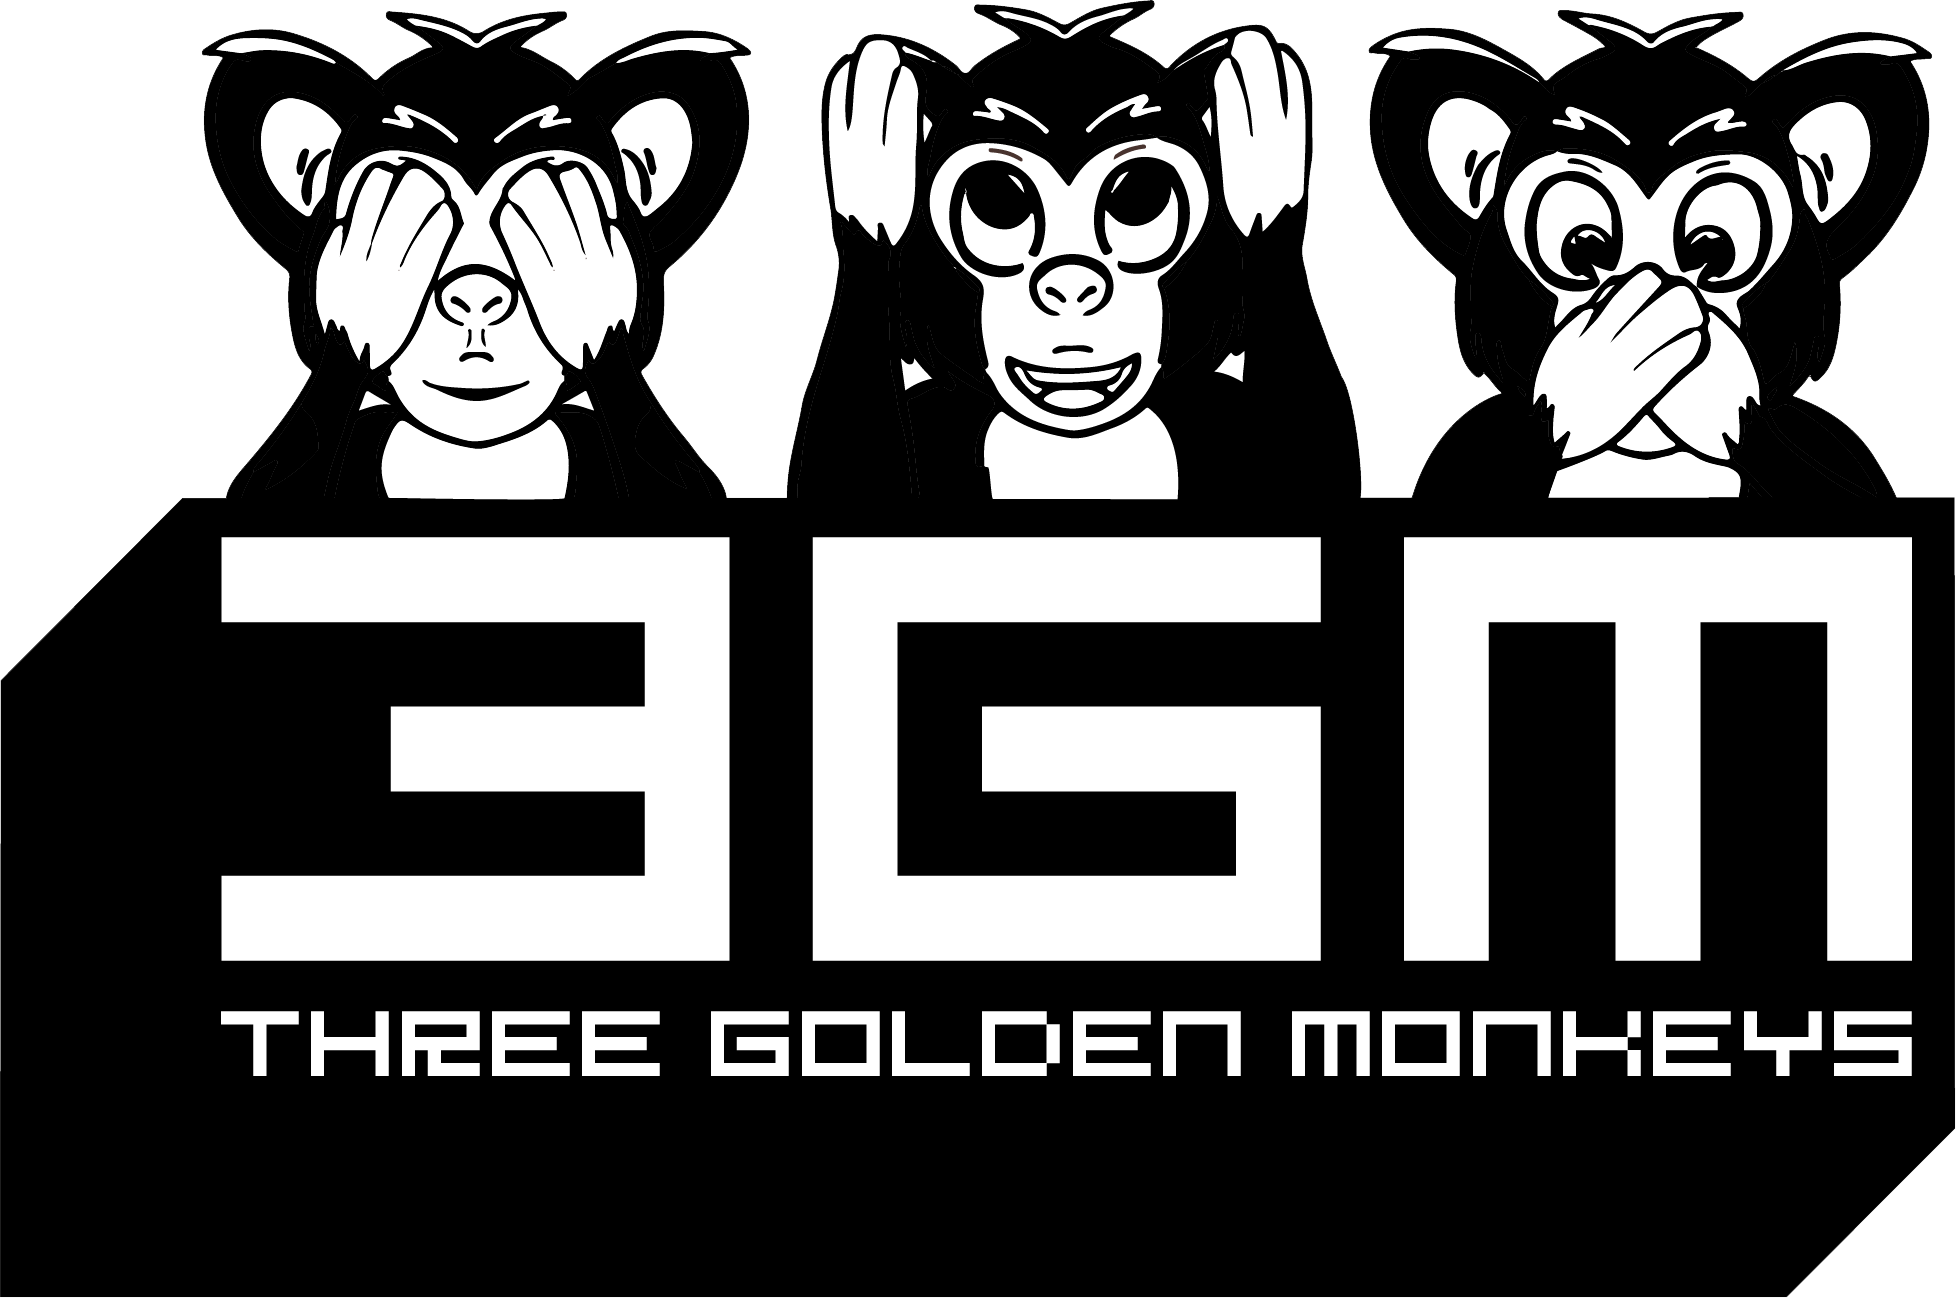 Juego de bolos gratis 2018 - Three Golden Monkeys Lab